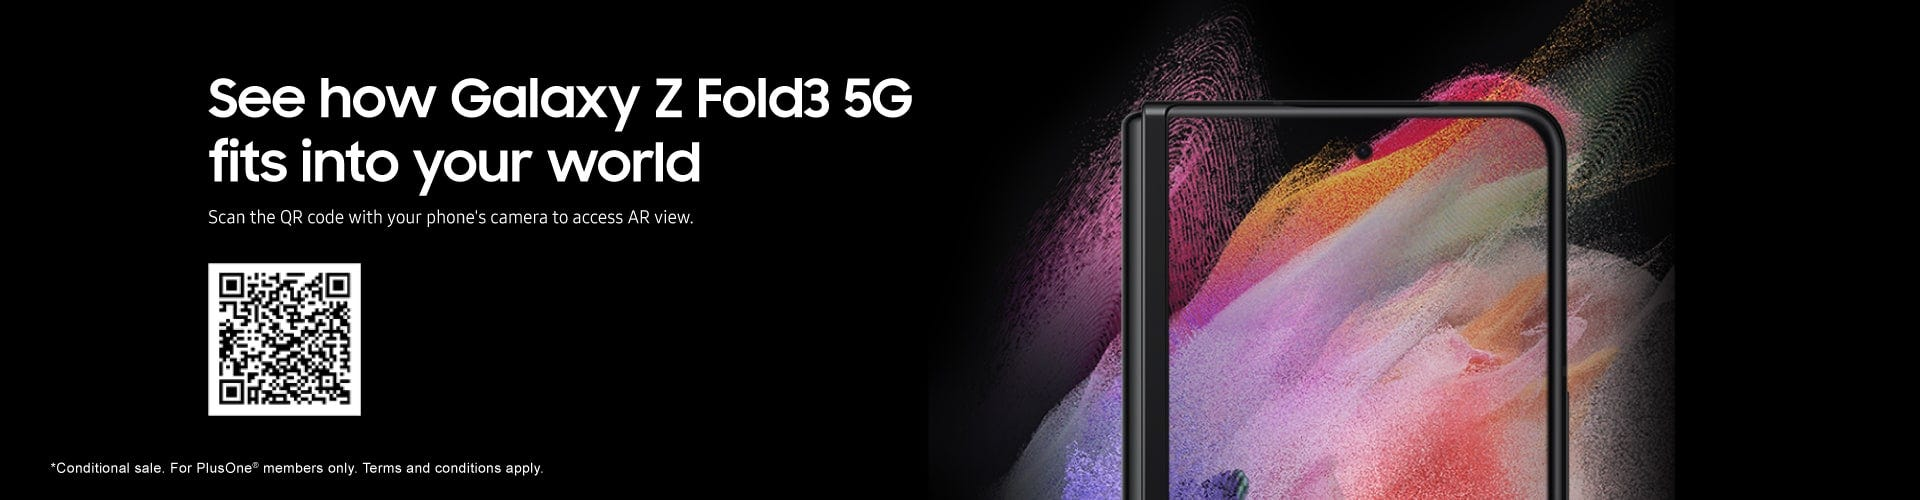 See how Galaxy Z Fold3 5G fits into your world